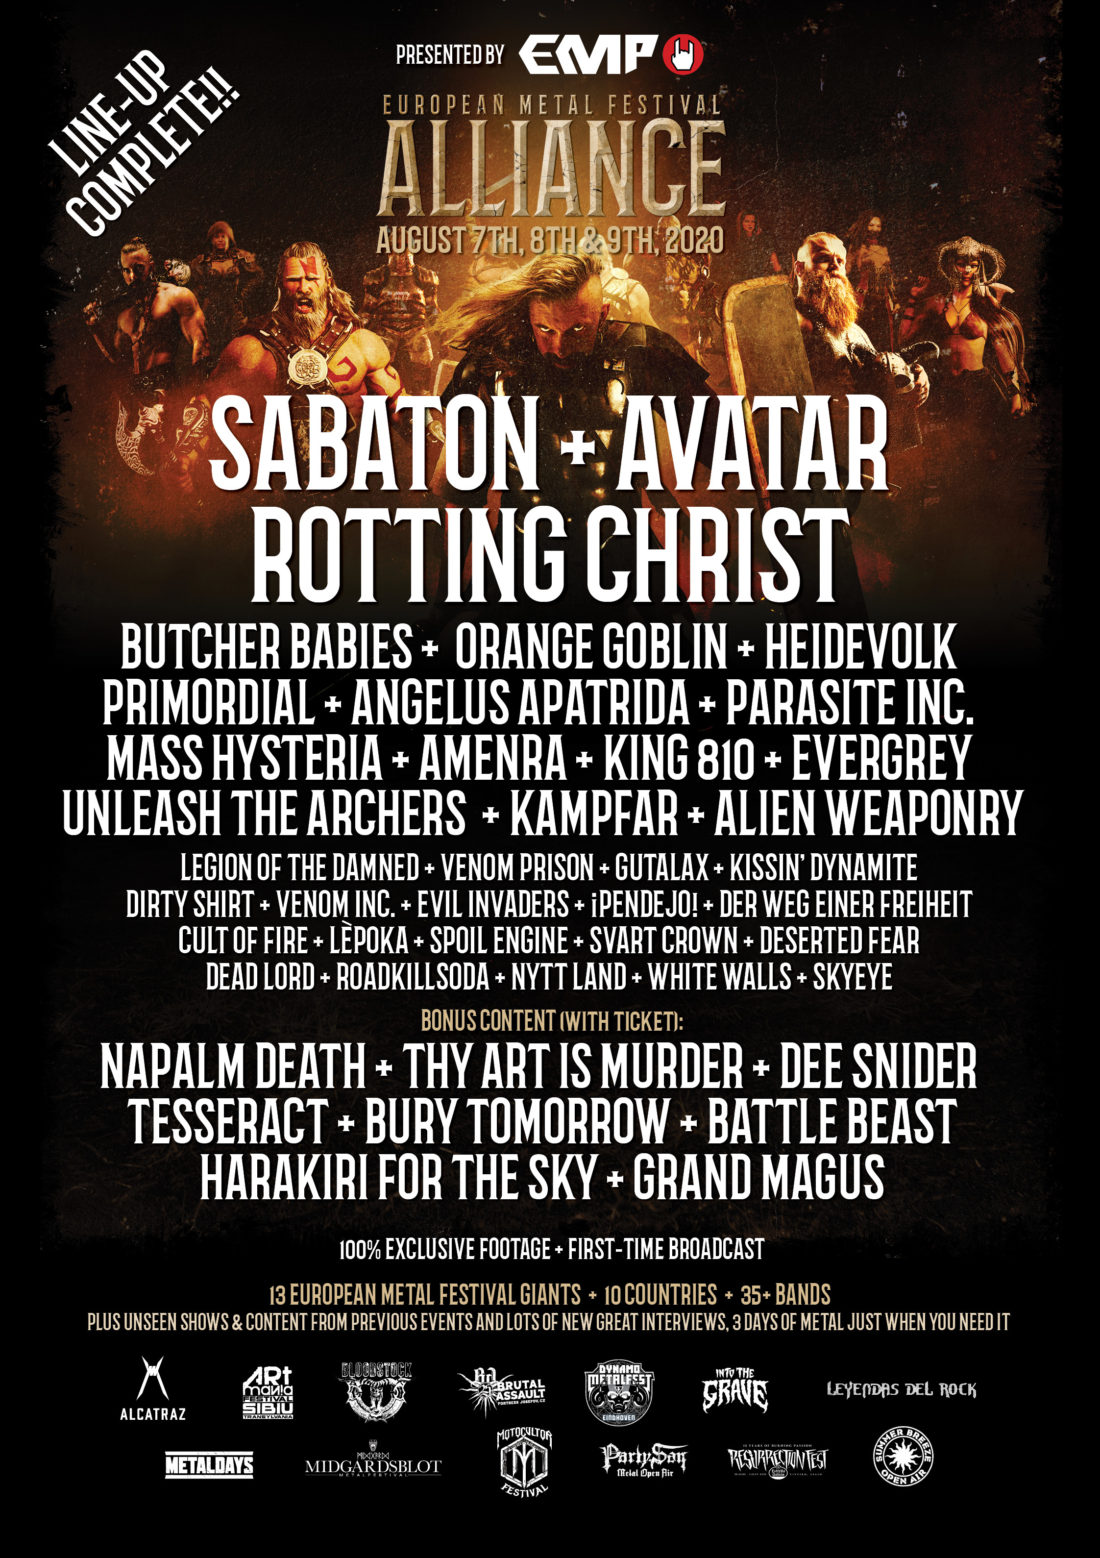 Cartel final de la European Metal Festival Alliance